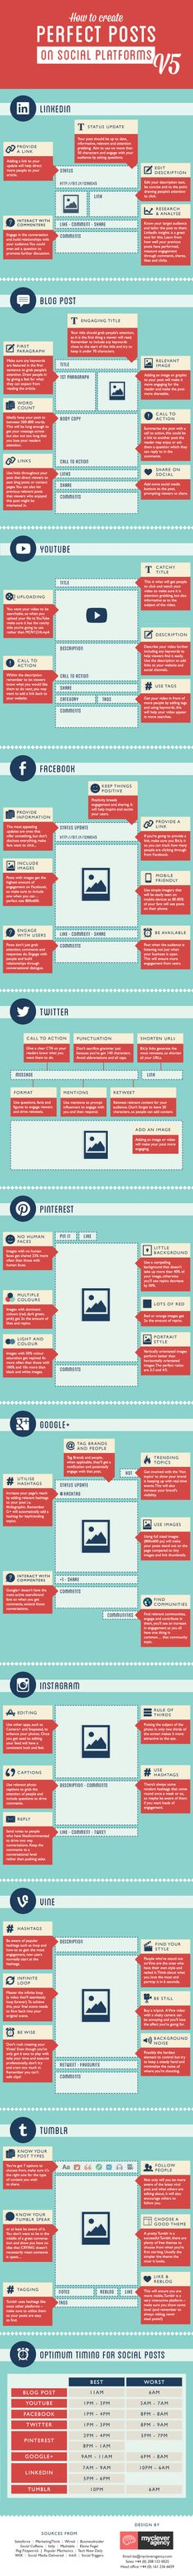 Best Social Media Campaigns Infographic